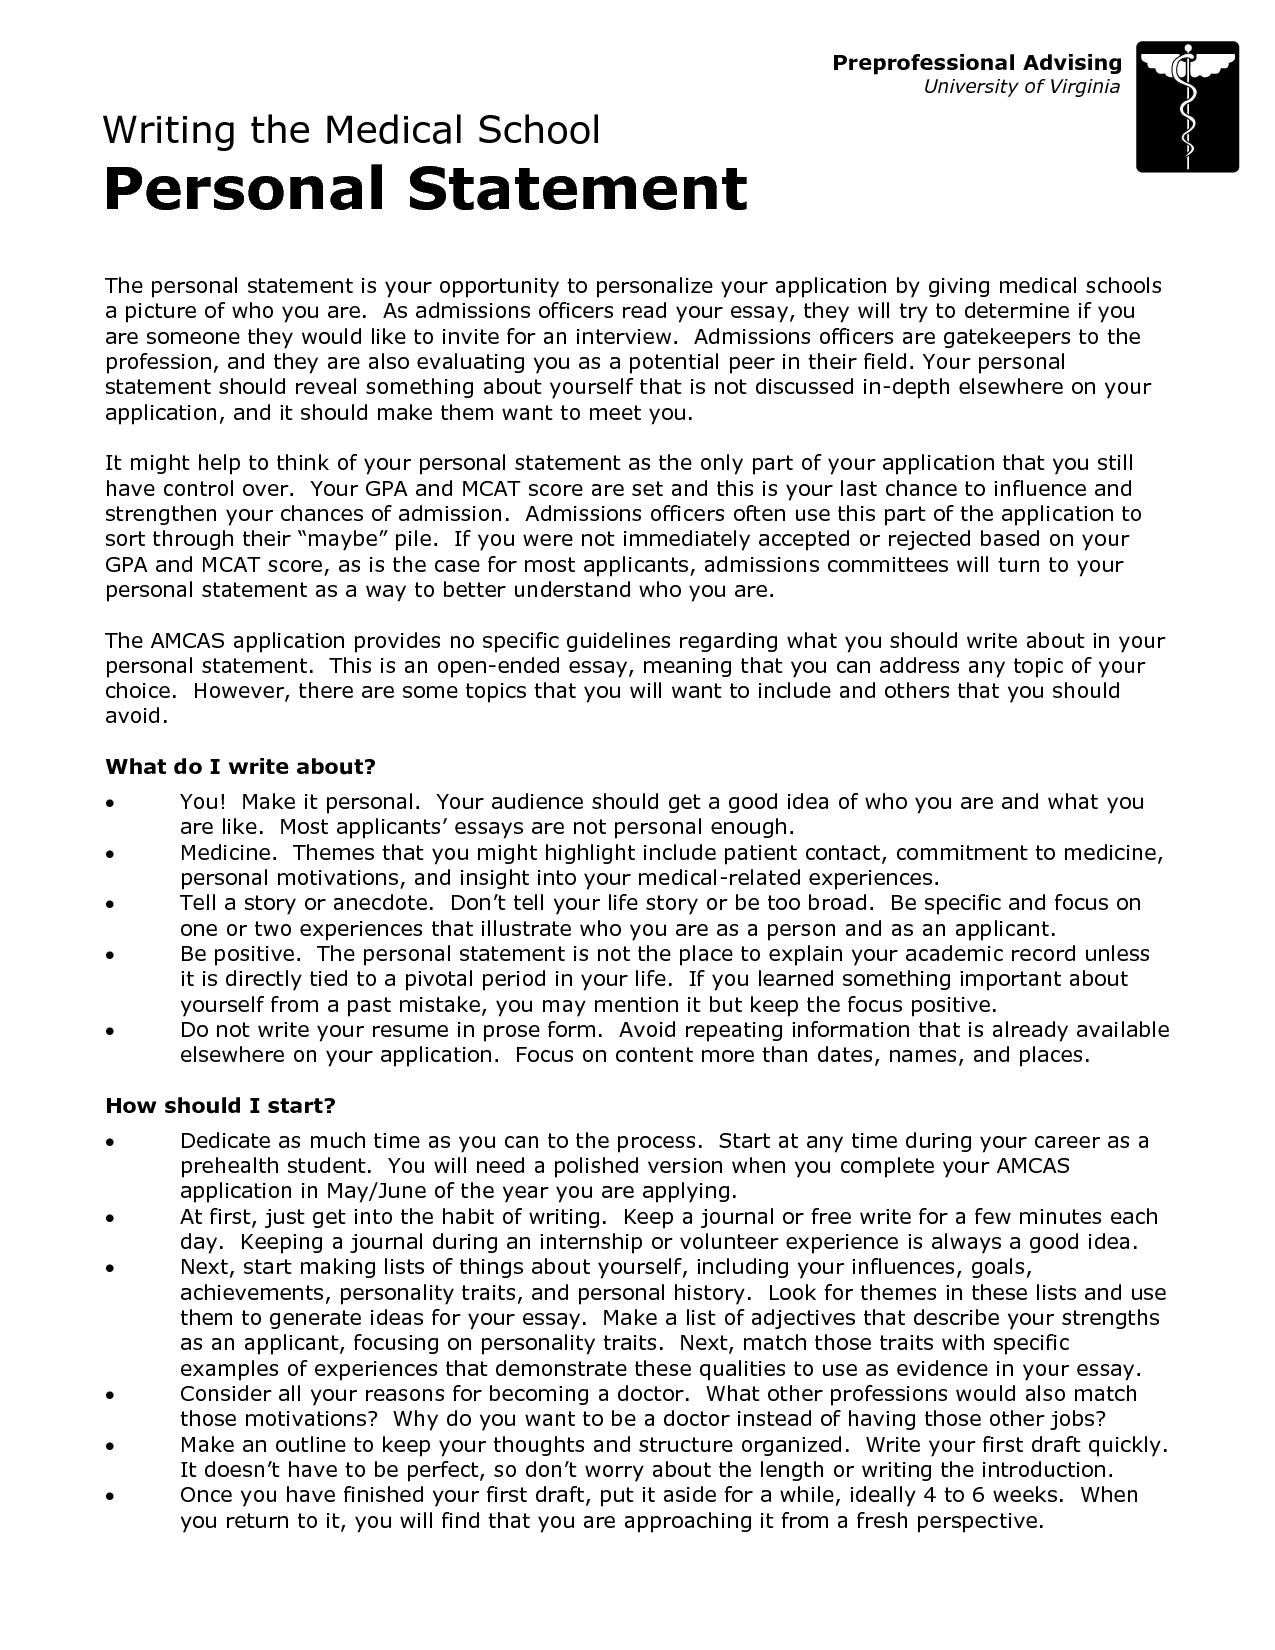 personal essay statements for college As your personal statement is one you will presumably be using for the majority of your college applications (if your colleges use collgeapp), there is no excuse for sending off an essay that is not completely free of mechanical and grammatical errors.